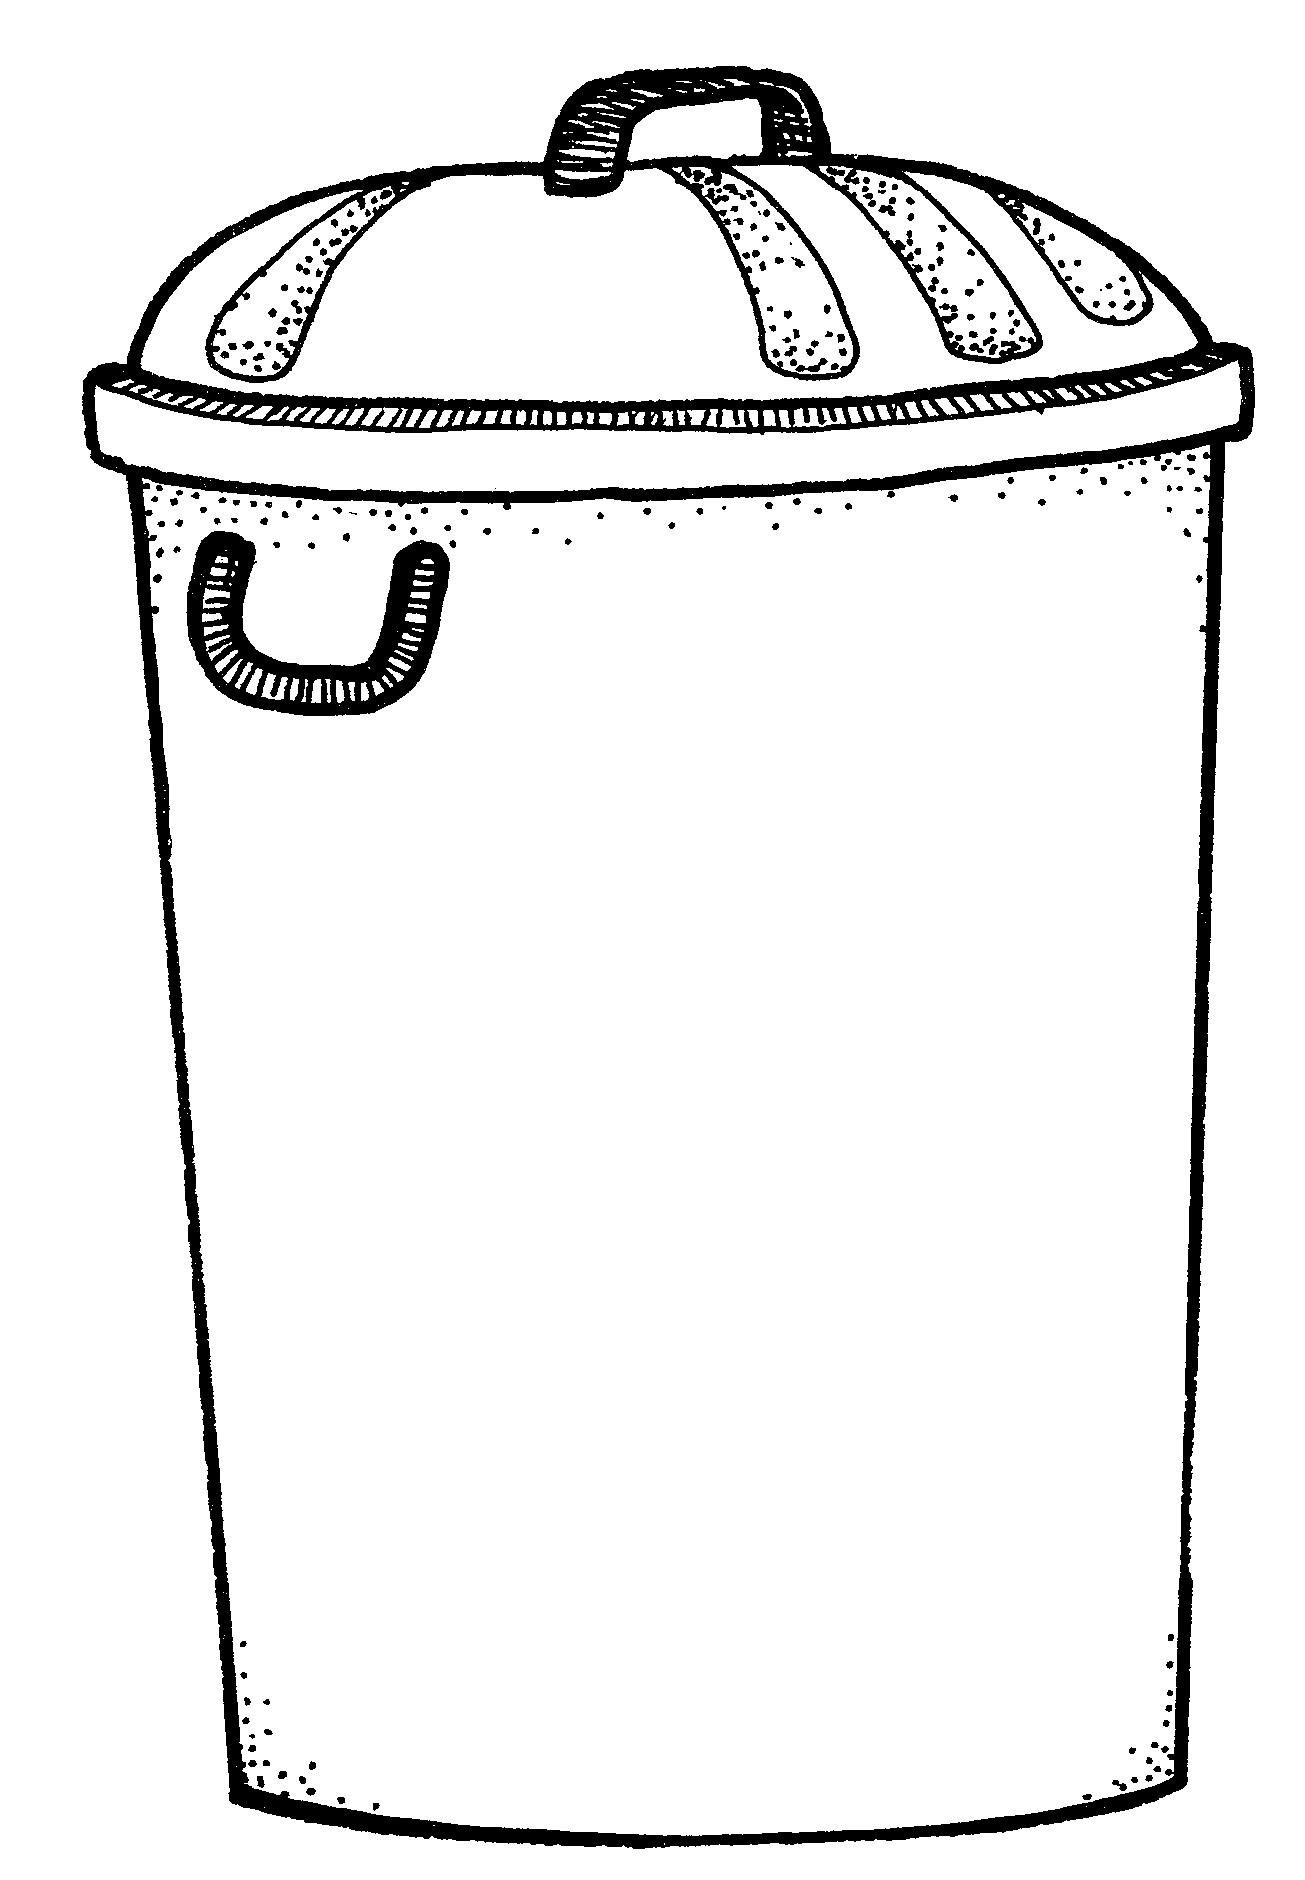 Trash can clip art.